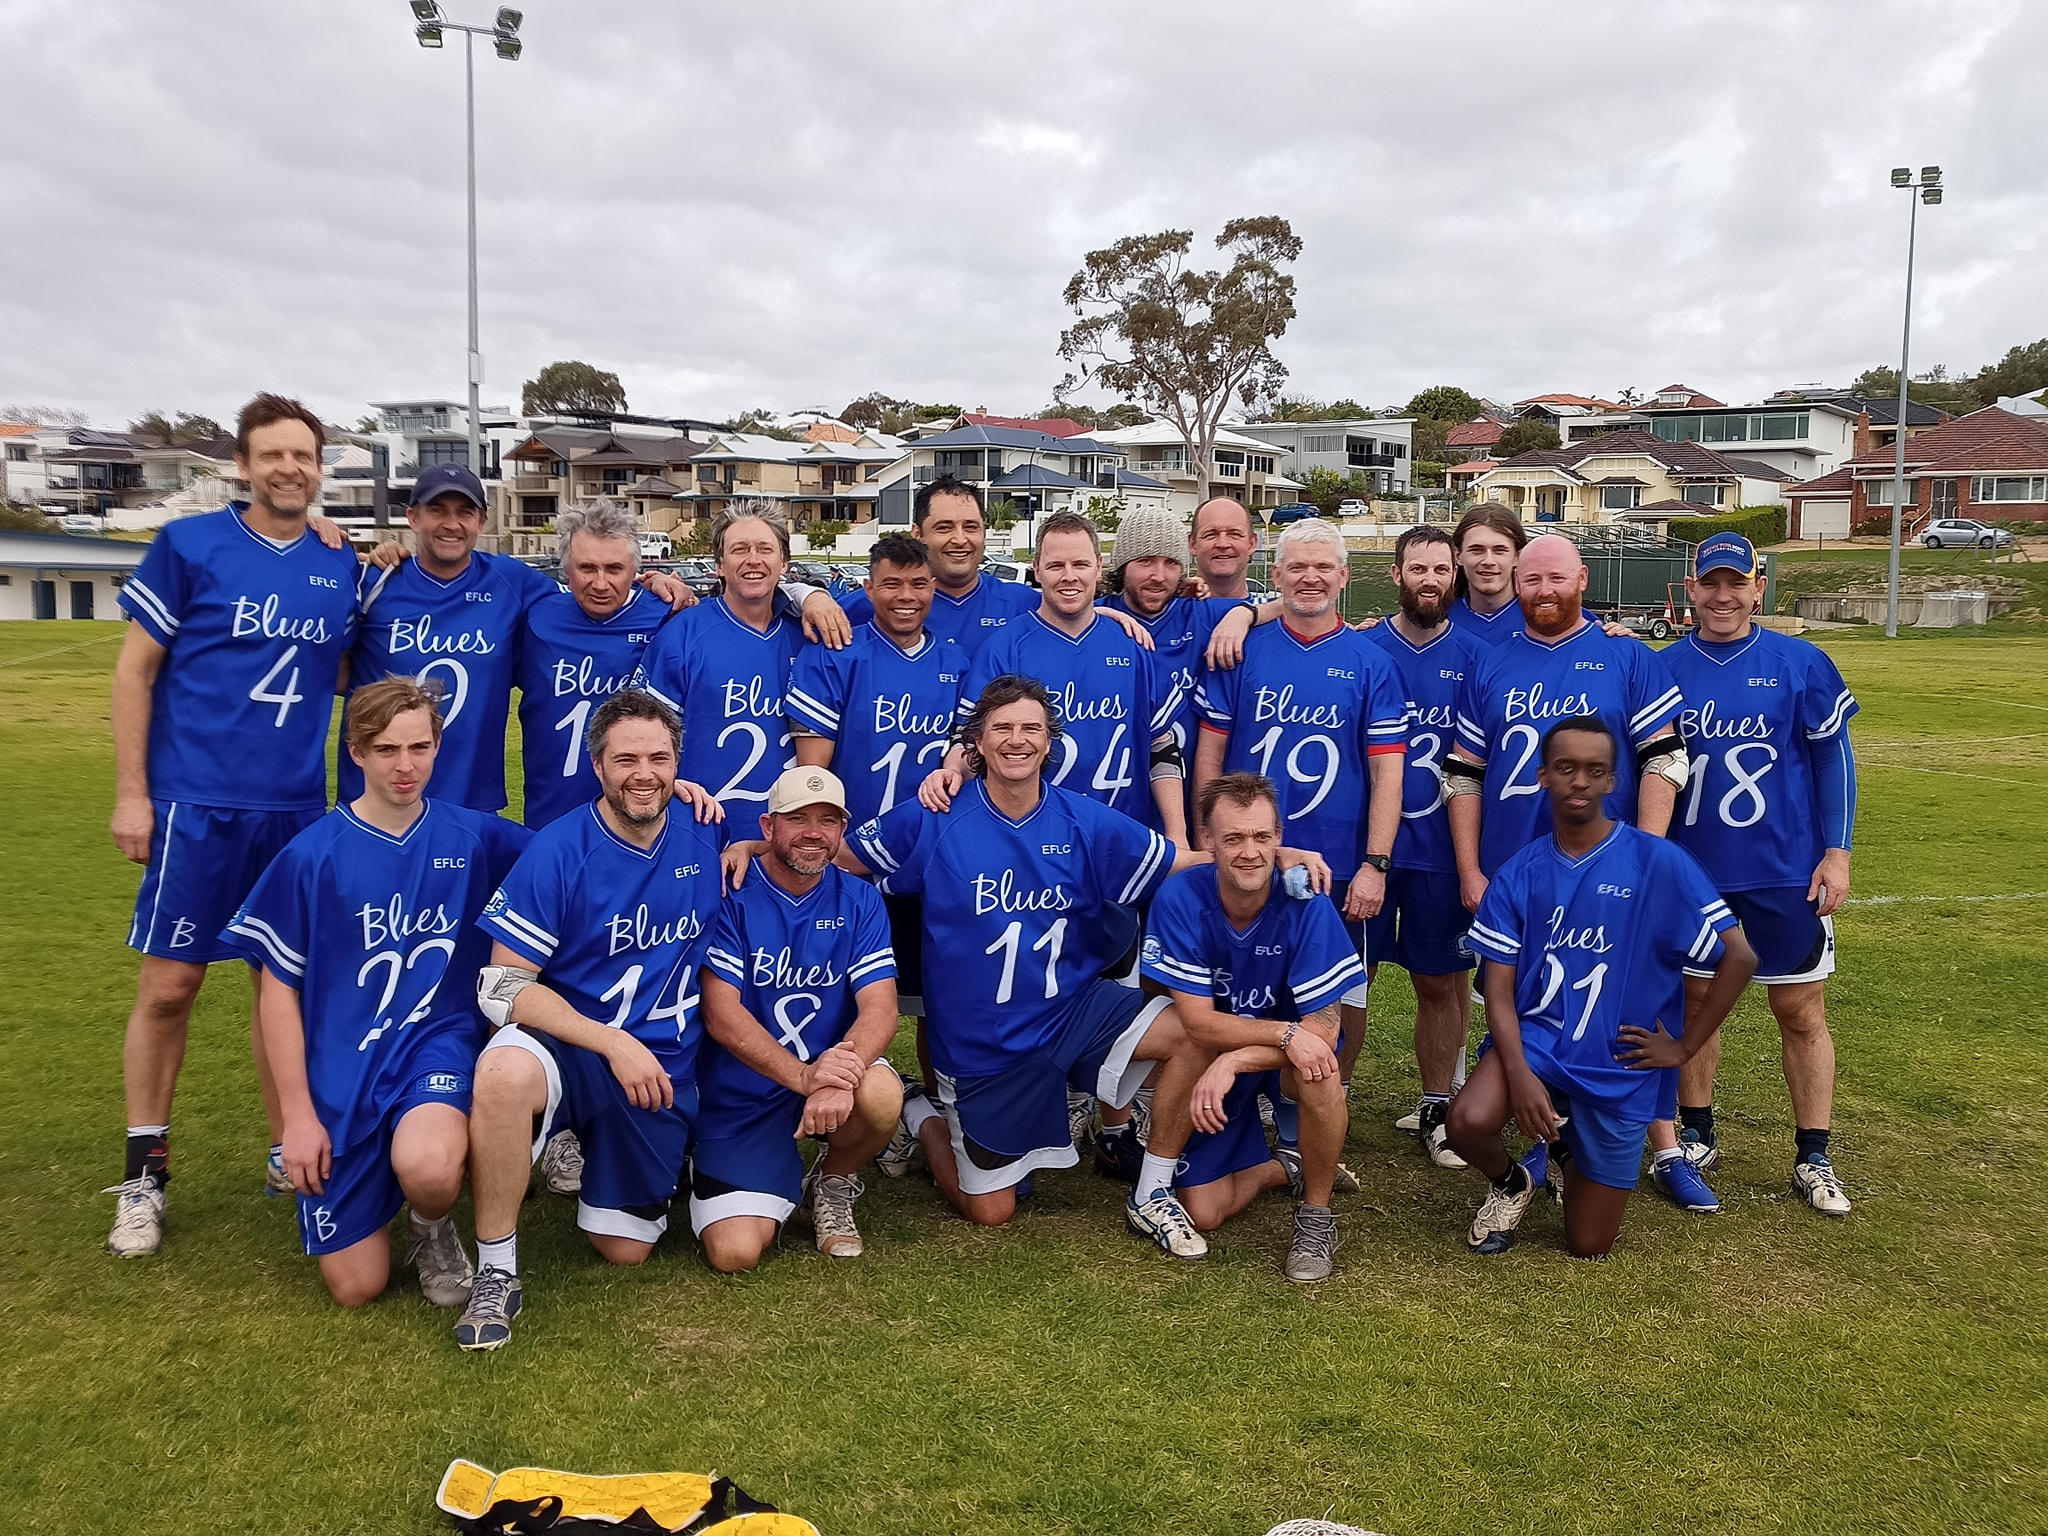 East Fremantle Lacrosse Club